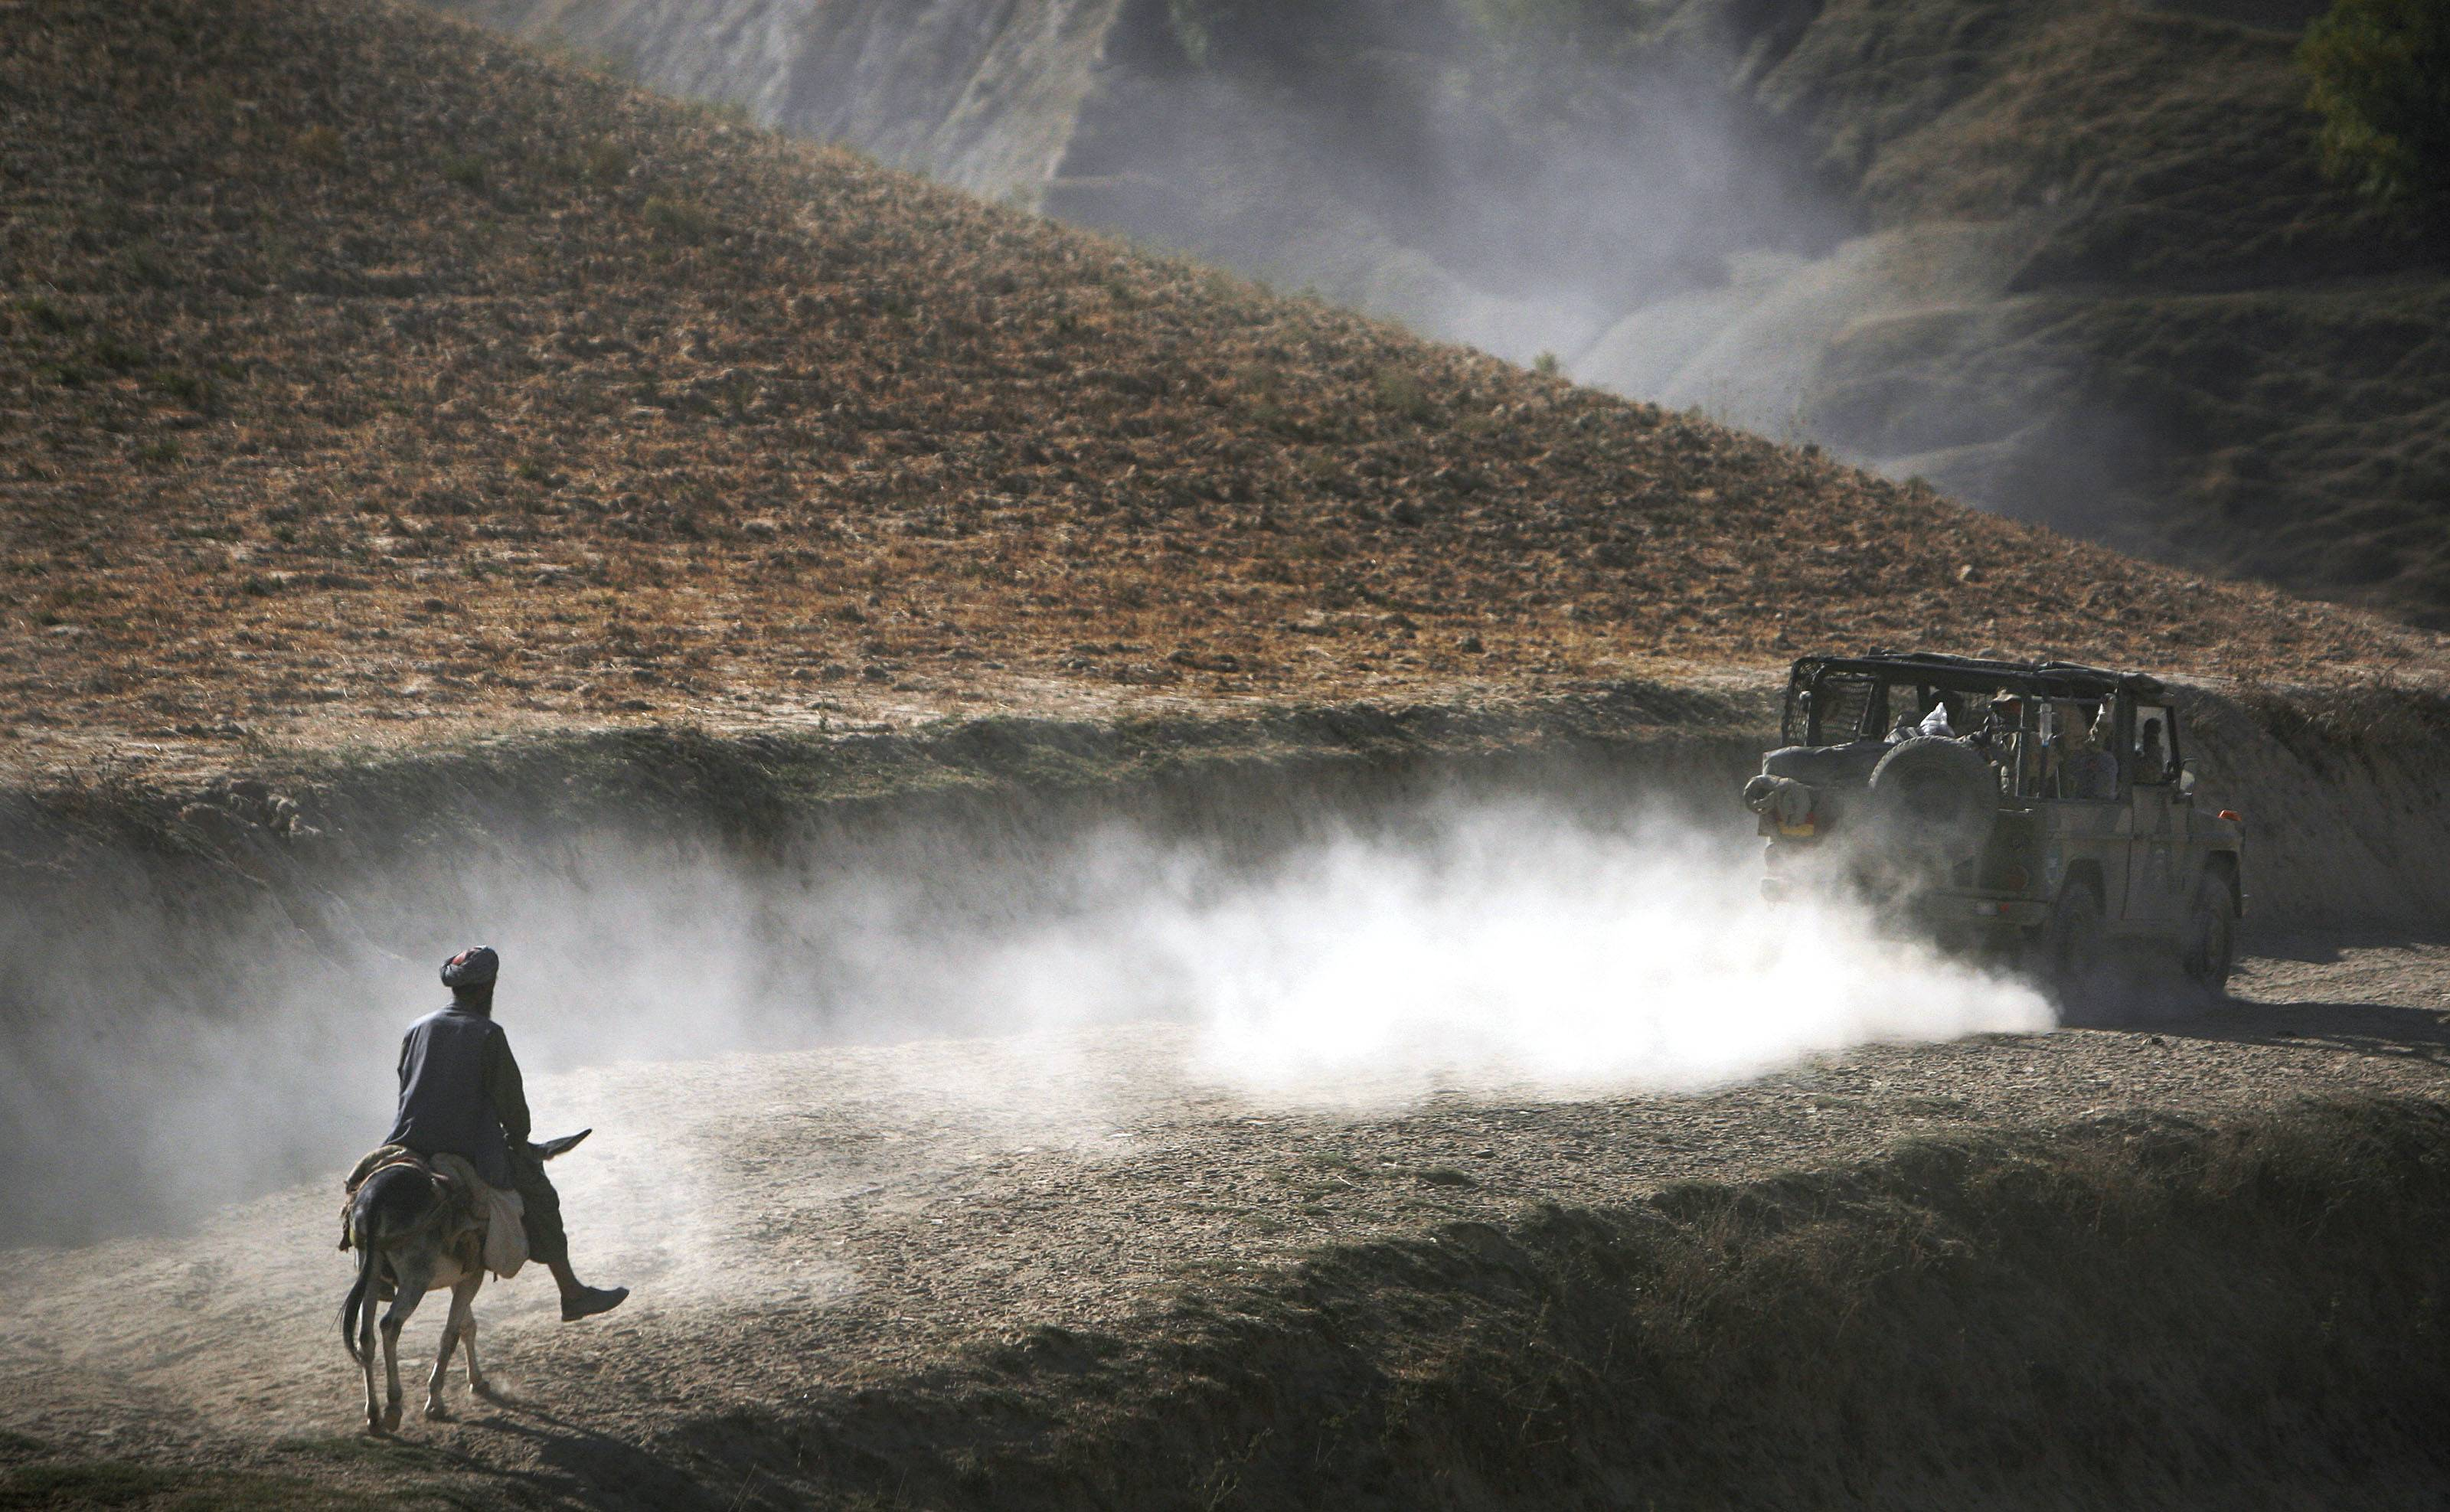 In this Tuesday, Sept. 15, 2009 file photo made by Associated Press photographer Anja Niedringhaus, an Afghan man on his donkey follows a convoy of German ISAF soldiers patrolling Yaftal E Sofla, in the mountainous region of Feyzabad, east of Kunduz, Afghanistan.